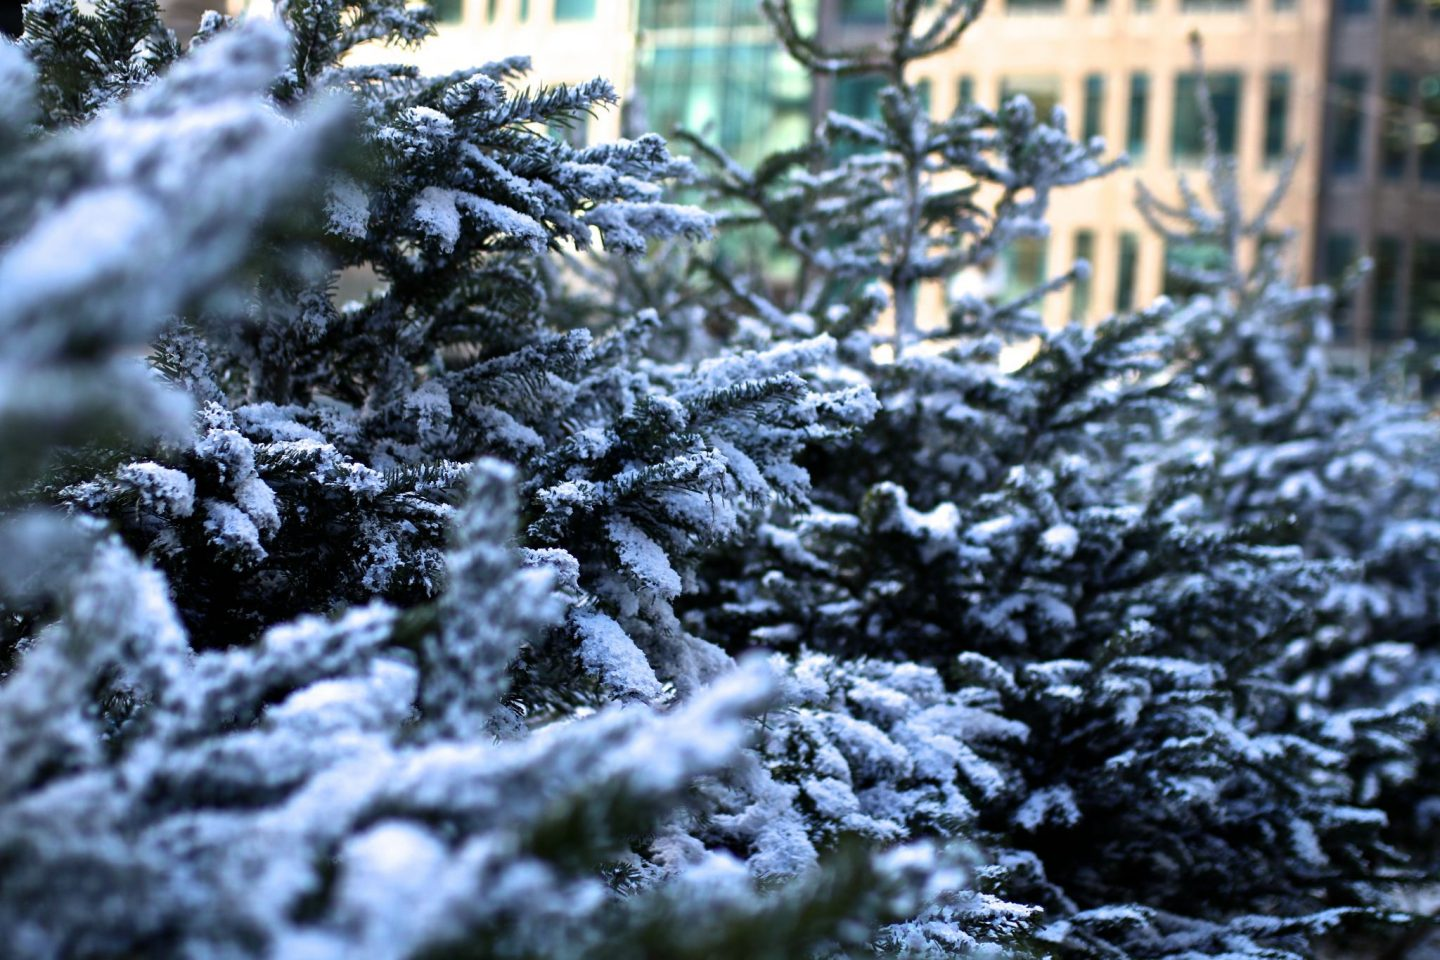 The Winter Forest, Broadgate, London, Katie KALANCHOE